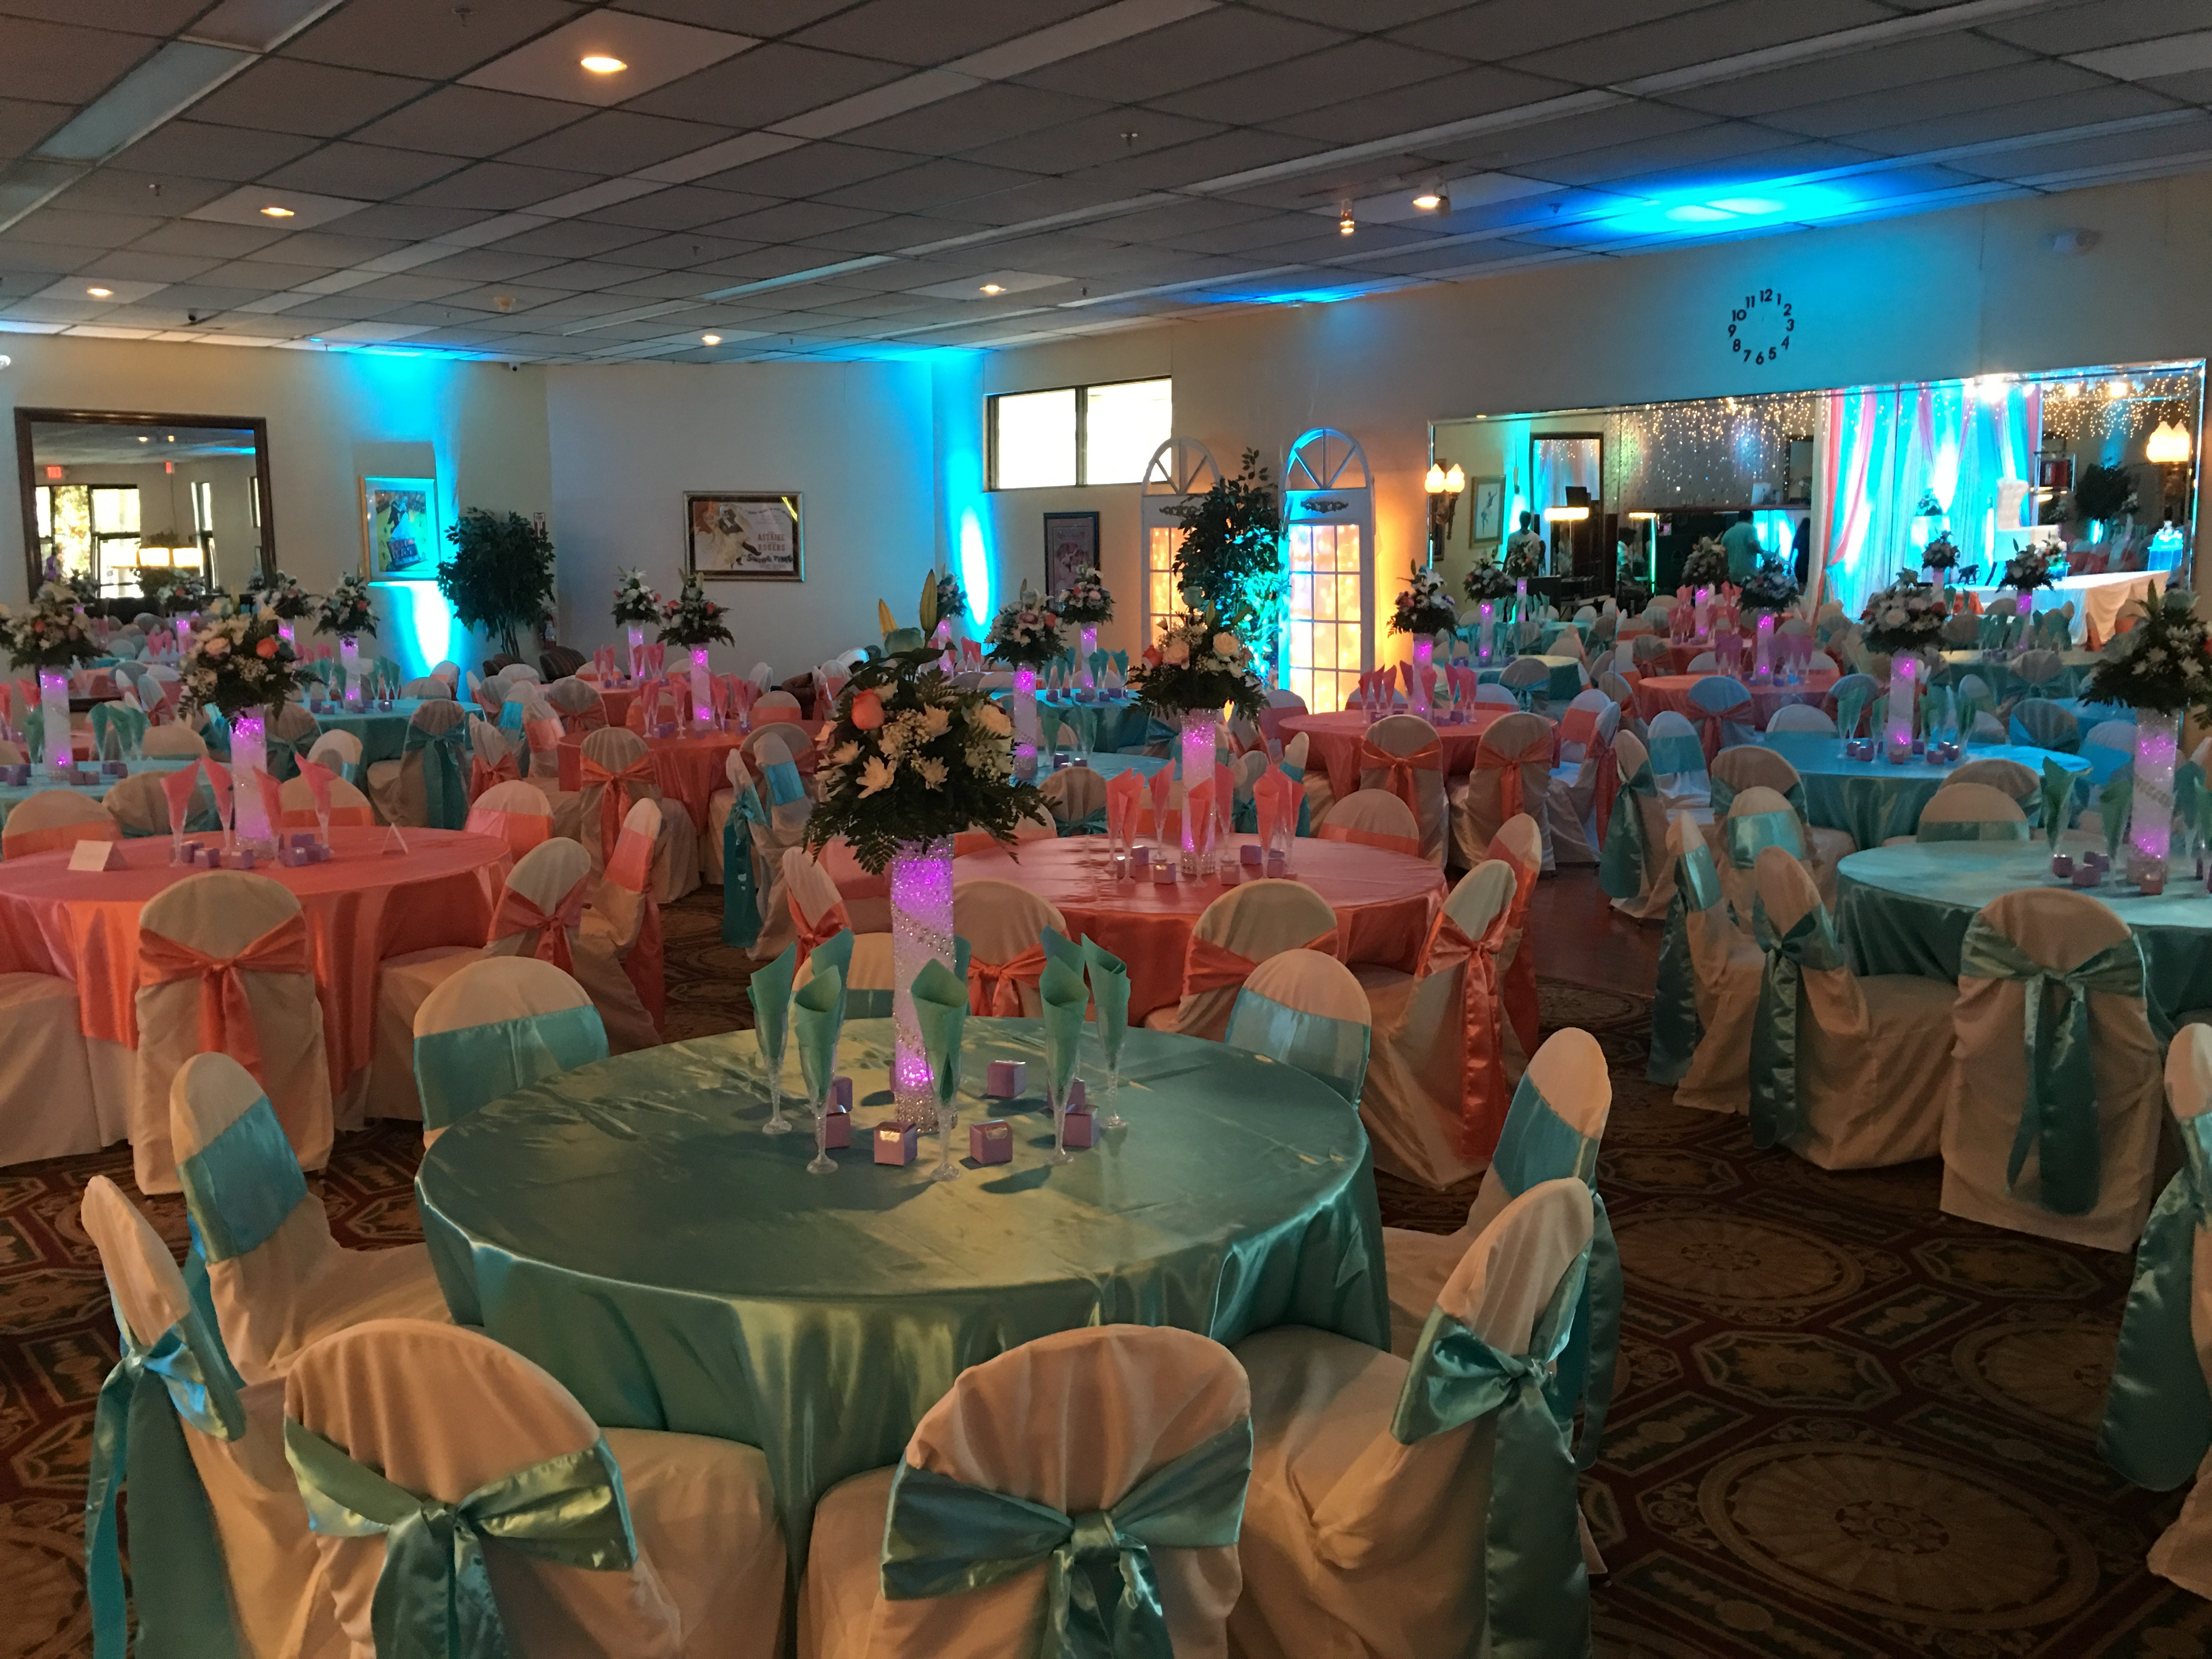 Goldcoast Ballroom - a Magical Event Venue